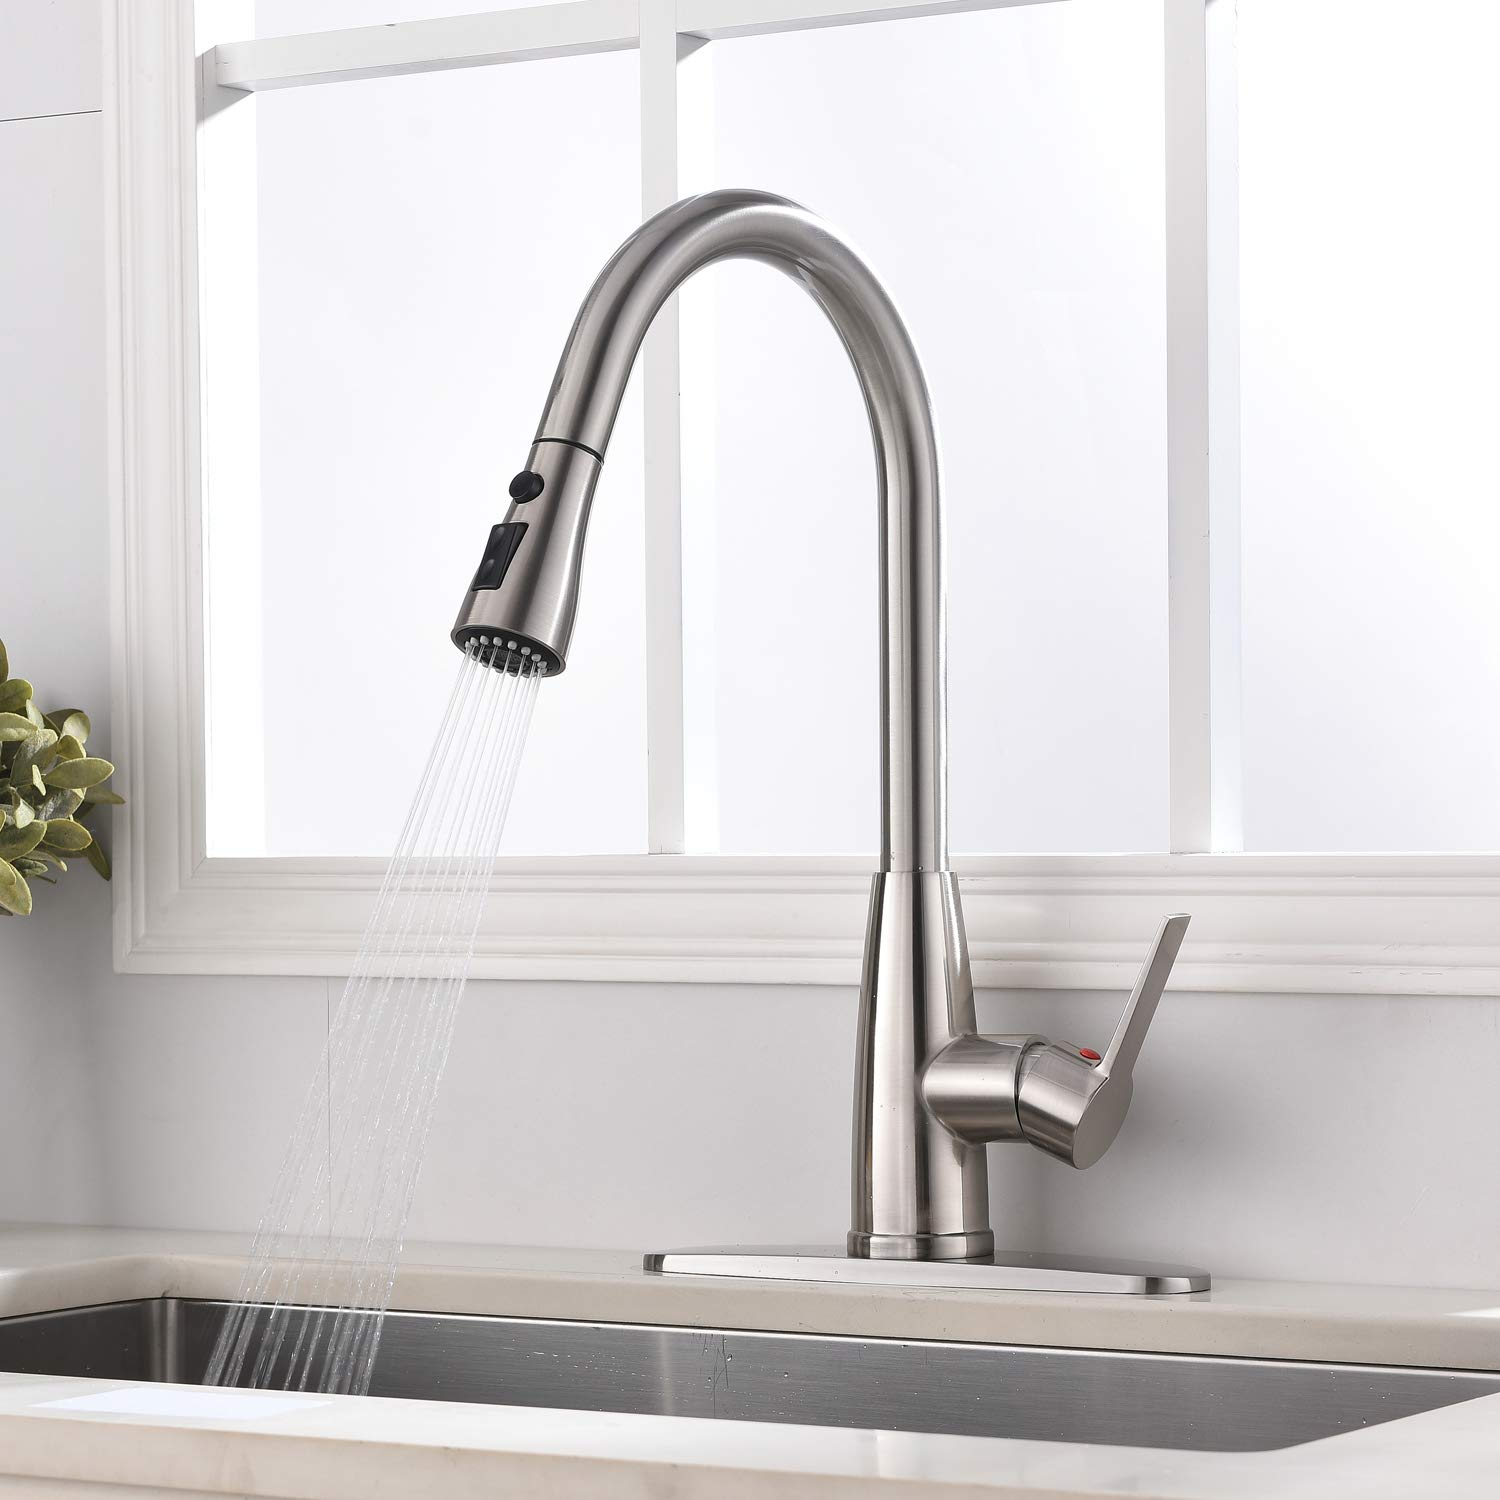 Hotis Modern High Arc 1 or 3 Hole Single Handle Stainless Steel Prep Sprayer Pull Out Pull Down Sprayer Kitchen Sink Faucet, Brushed Nickel with Deck Plate by HOTIS HOME (Image #6)